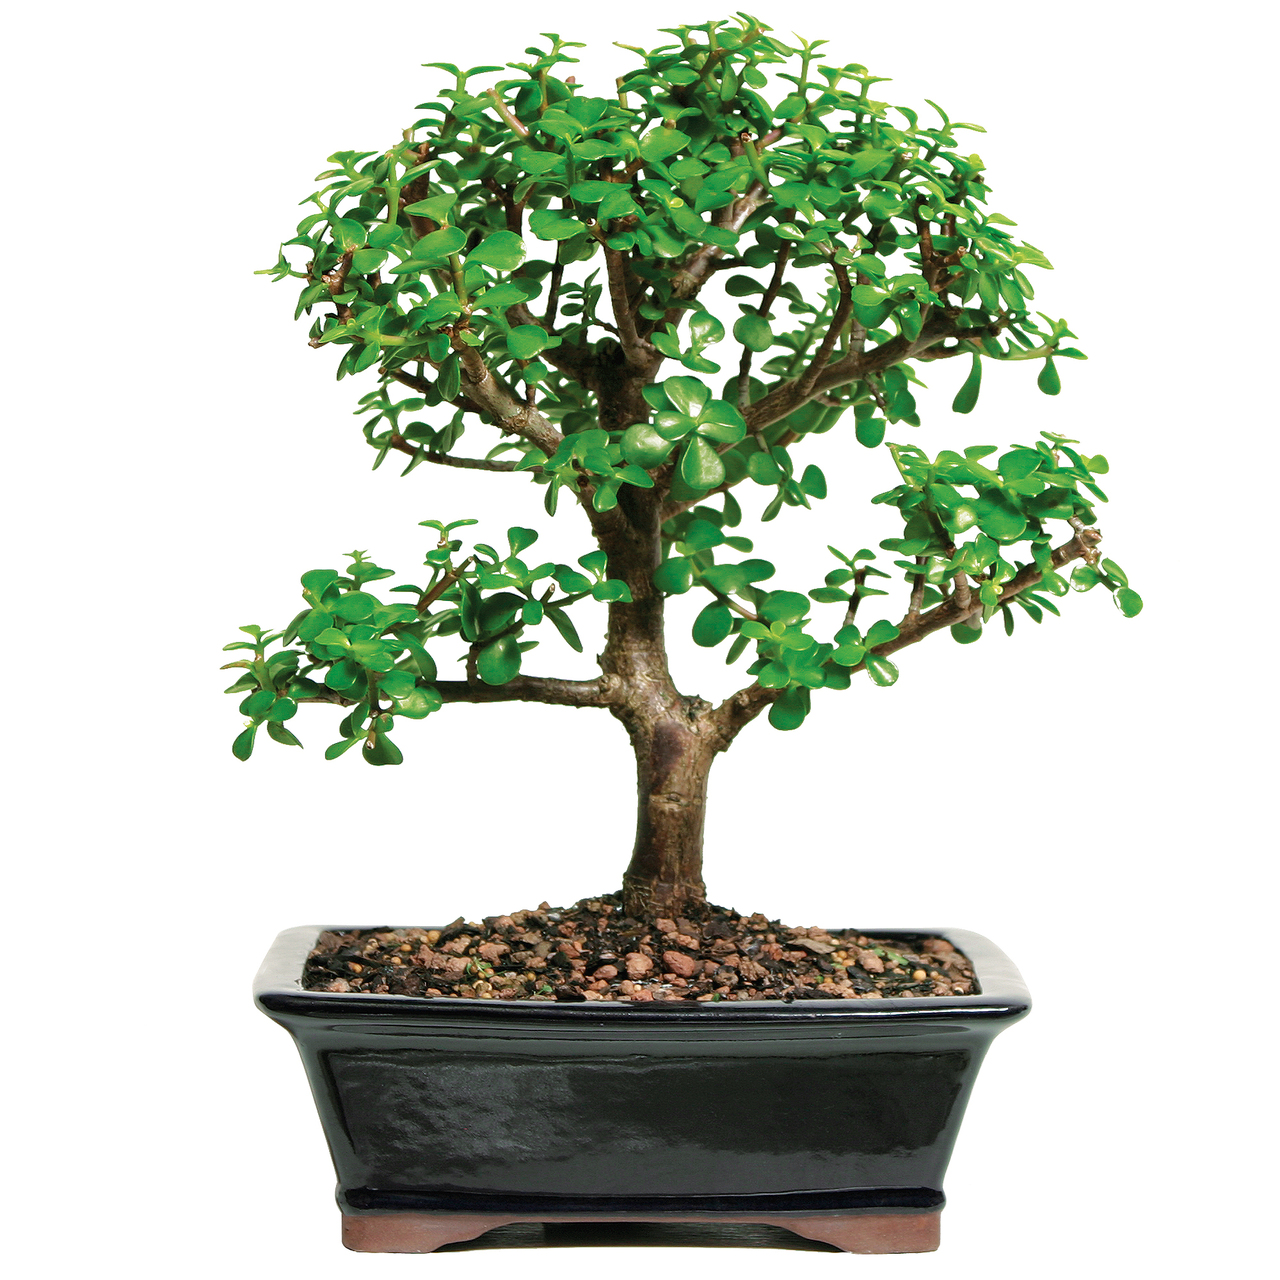 Grow Green Bonsai